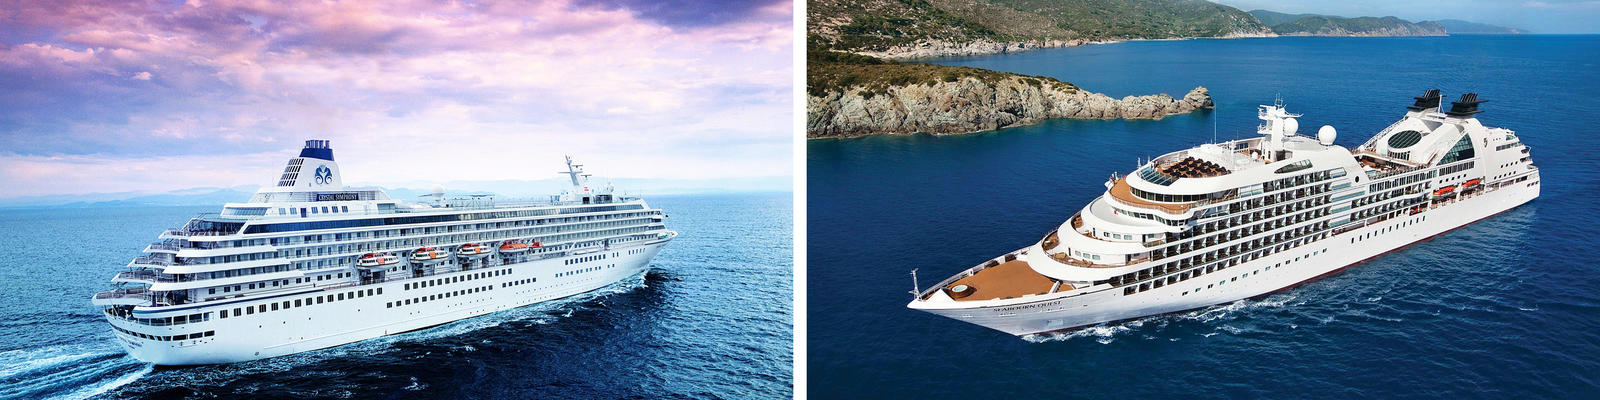 Crystal Cruises vs. Seabourn Cruise Line (Photo: Crystal & Seabourn)